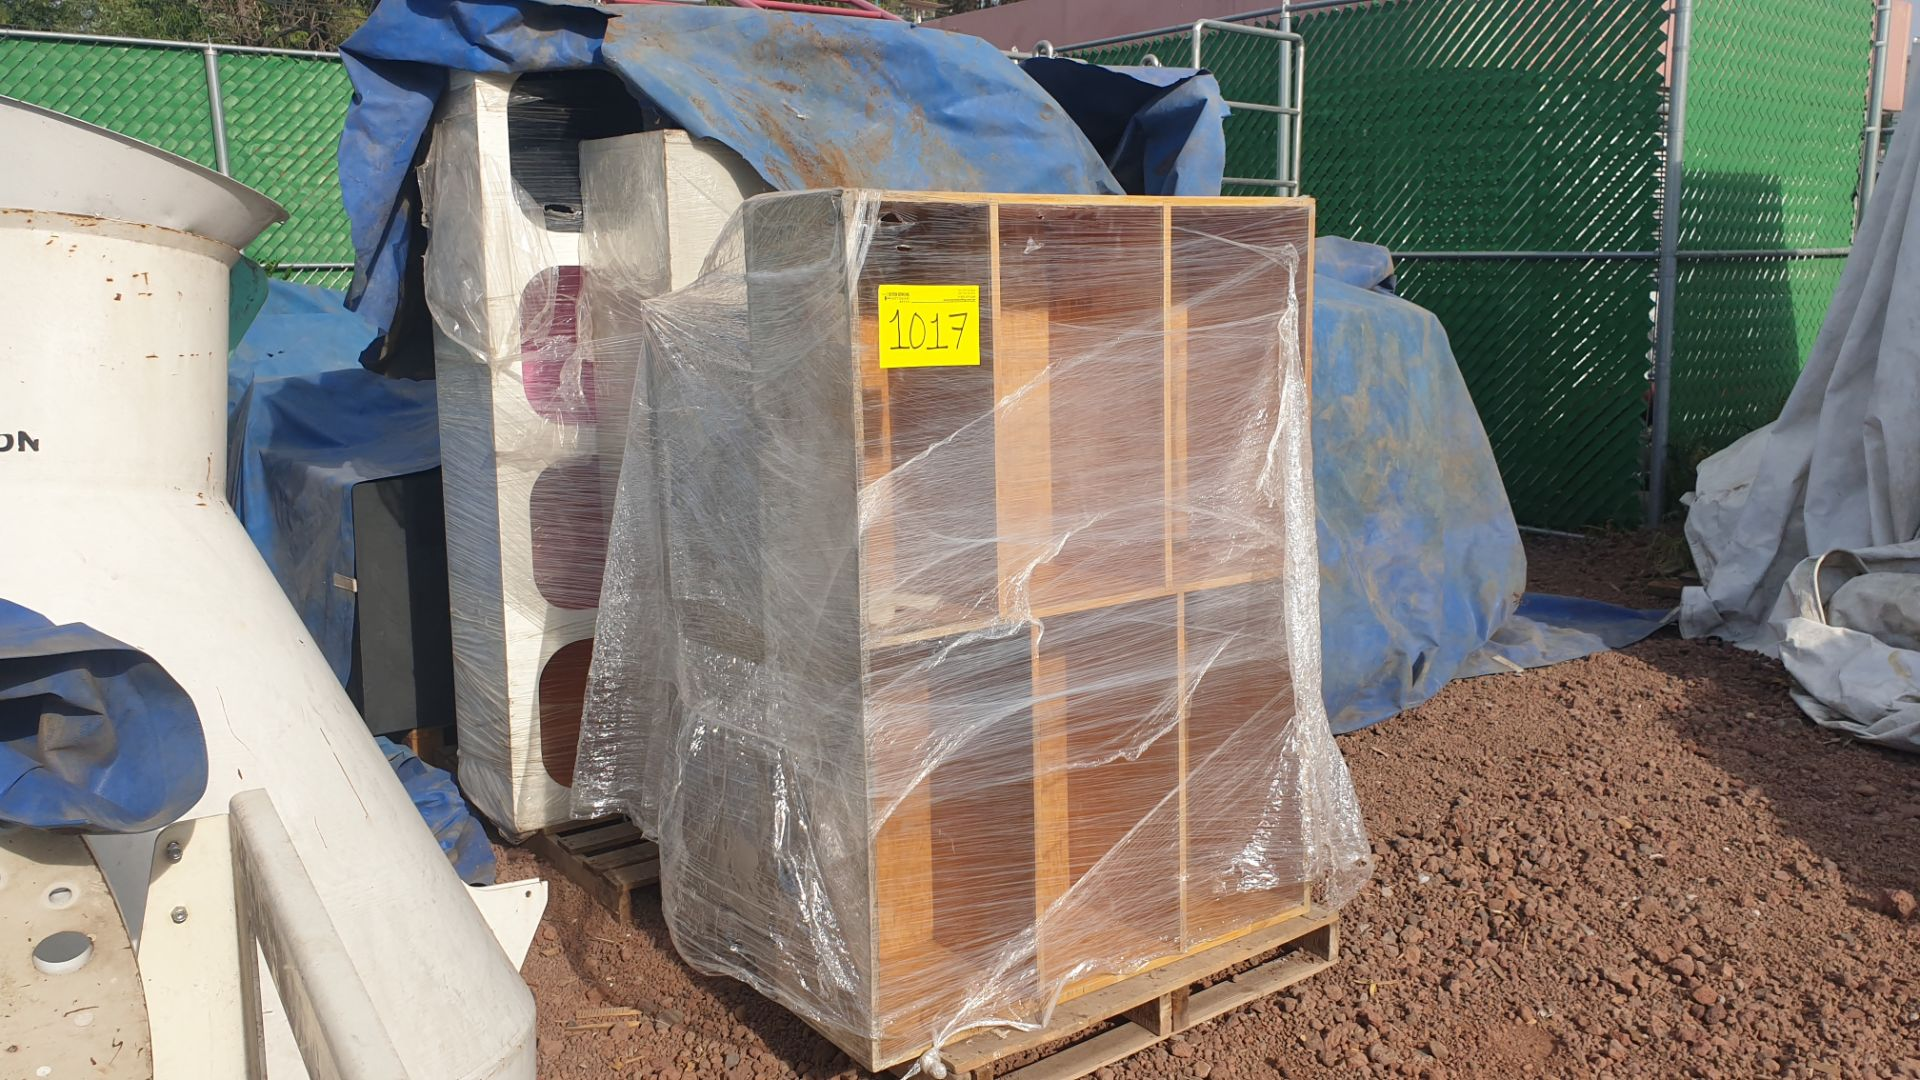 1 Lot of office furniture, includes bookcase, metal file cabinets. Please inspect - Image 8 of 12